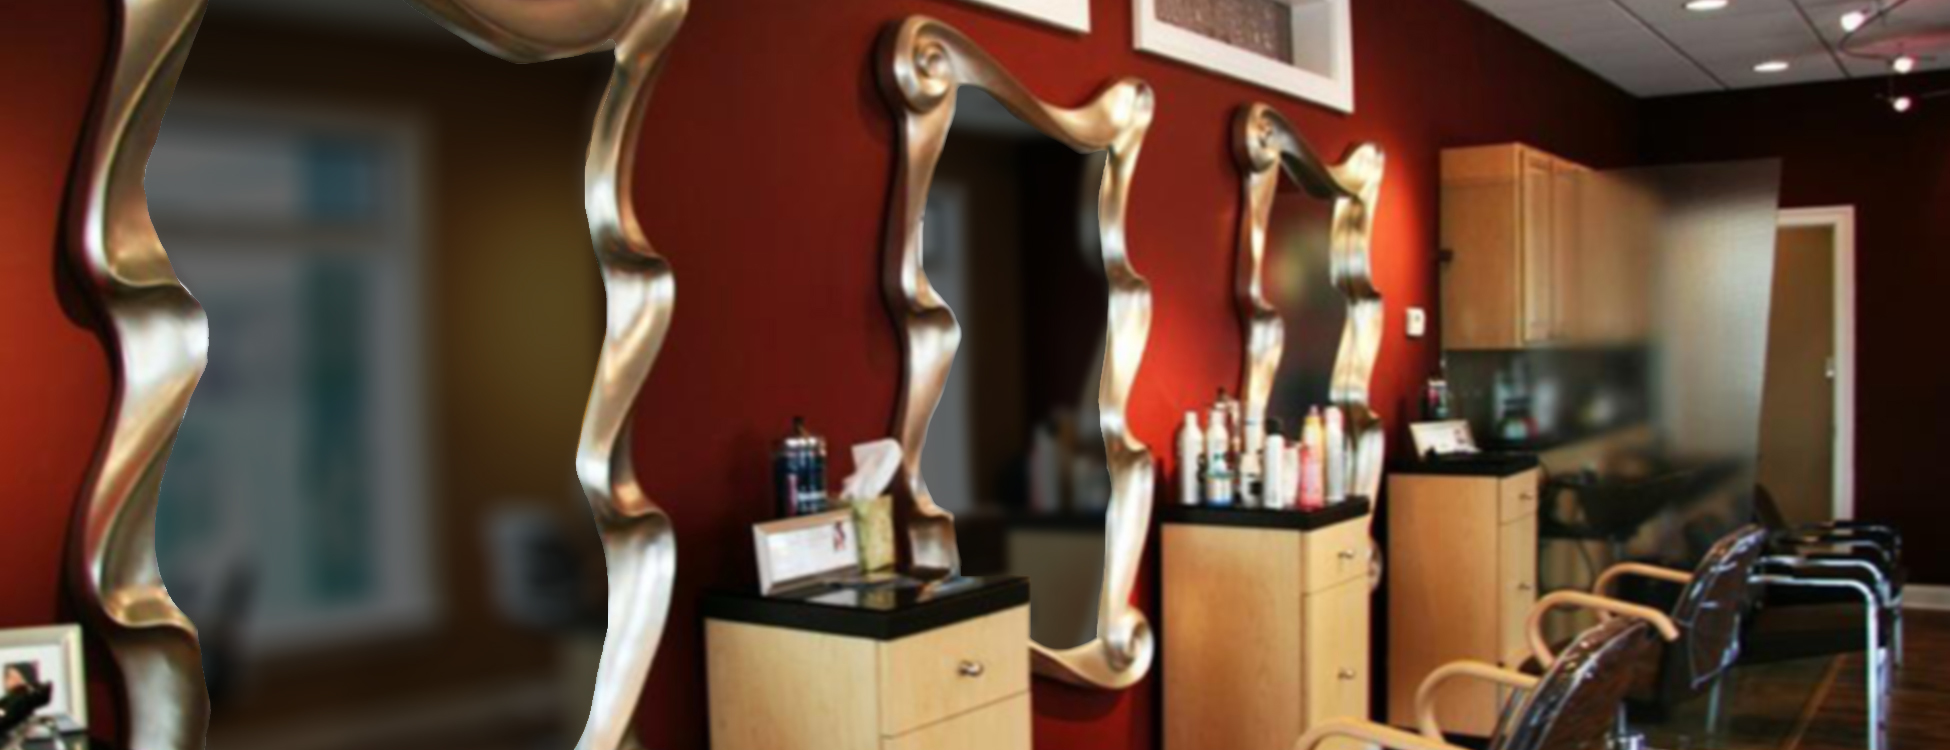 Domain Spa & Salon - Elkton Hair Salon